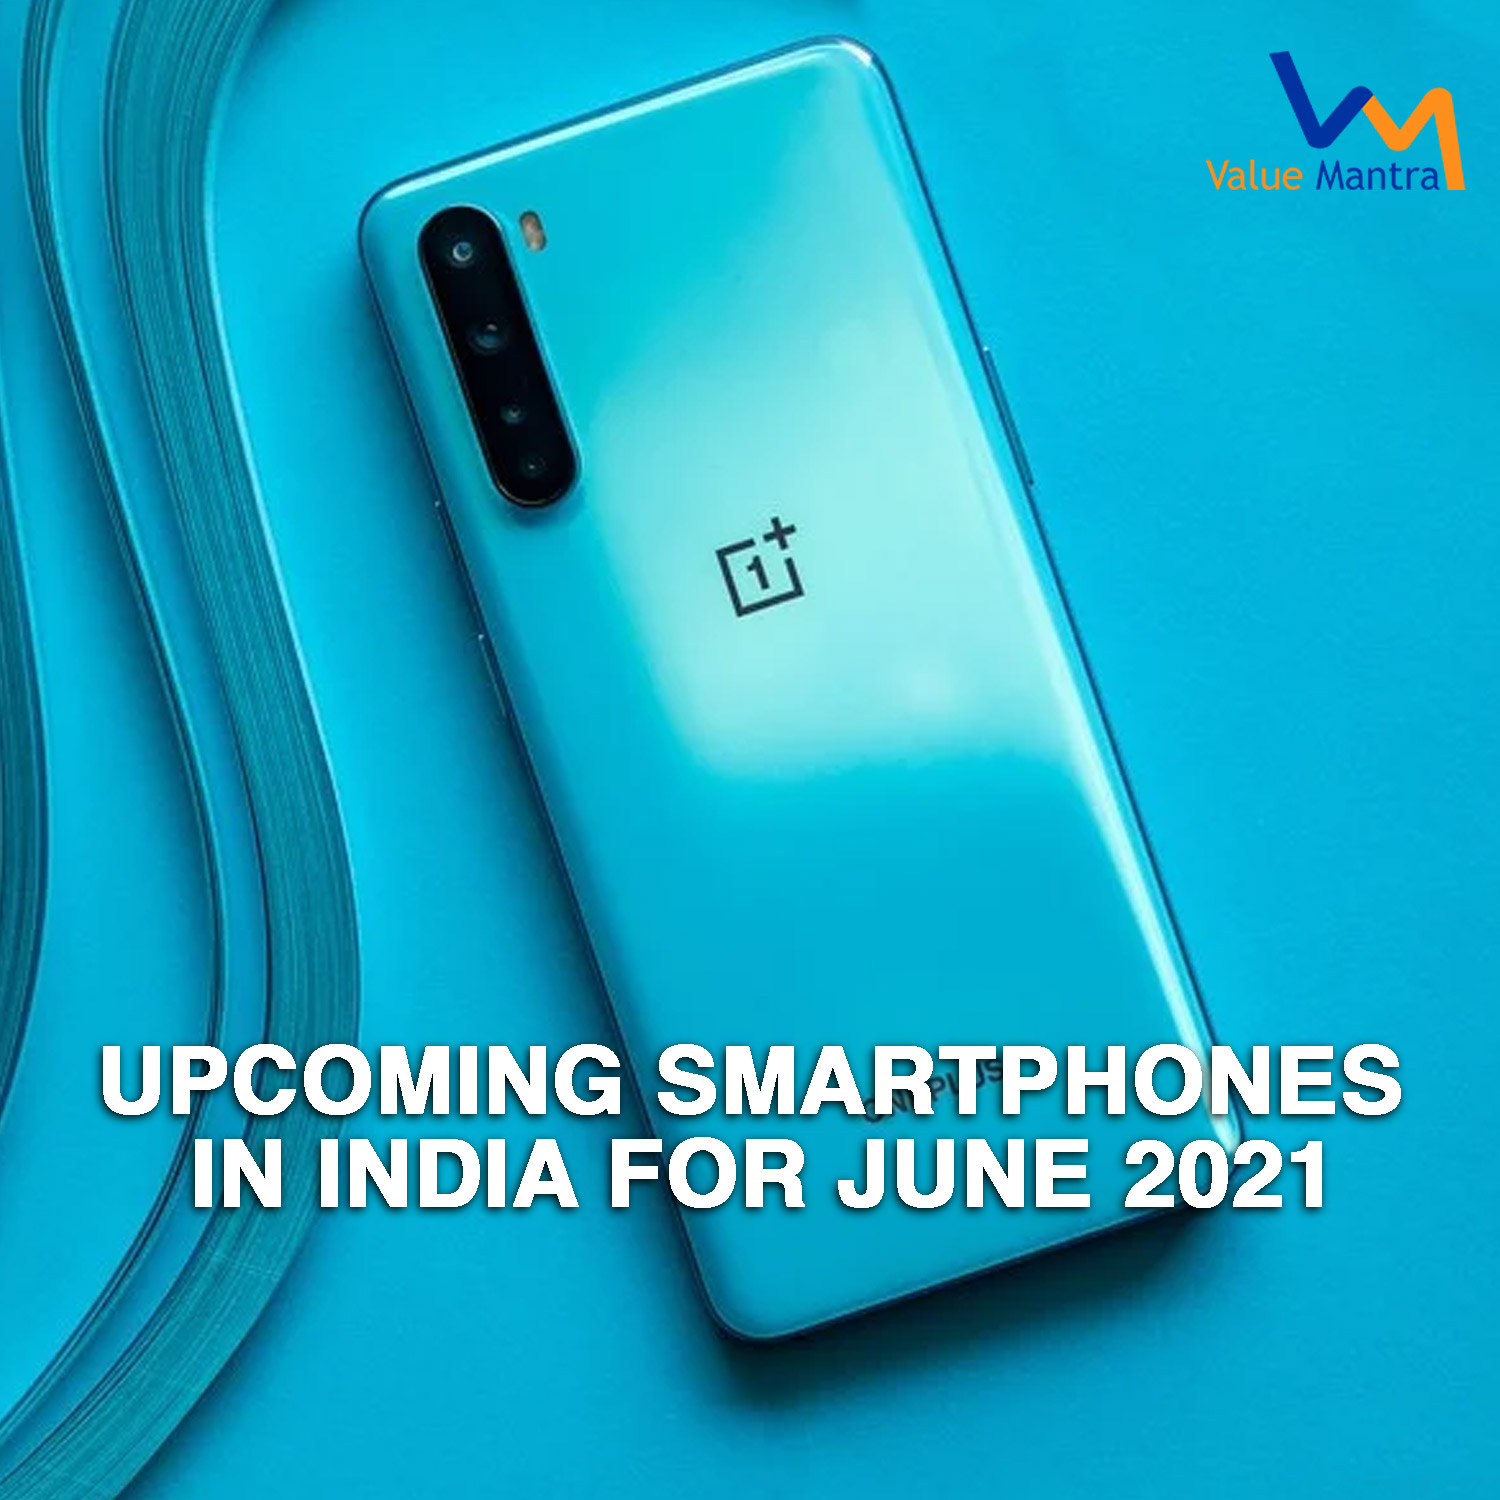 Latest Upcoming Smartphones in India for June